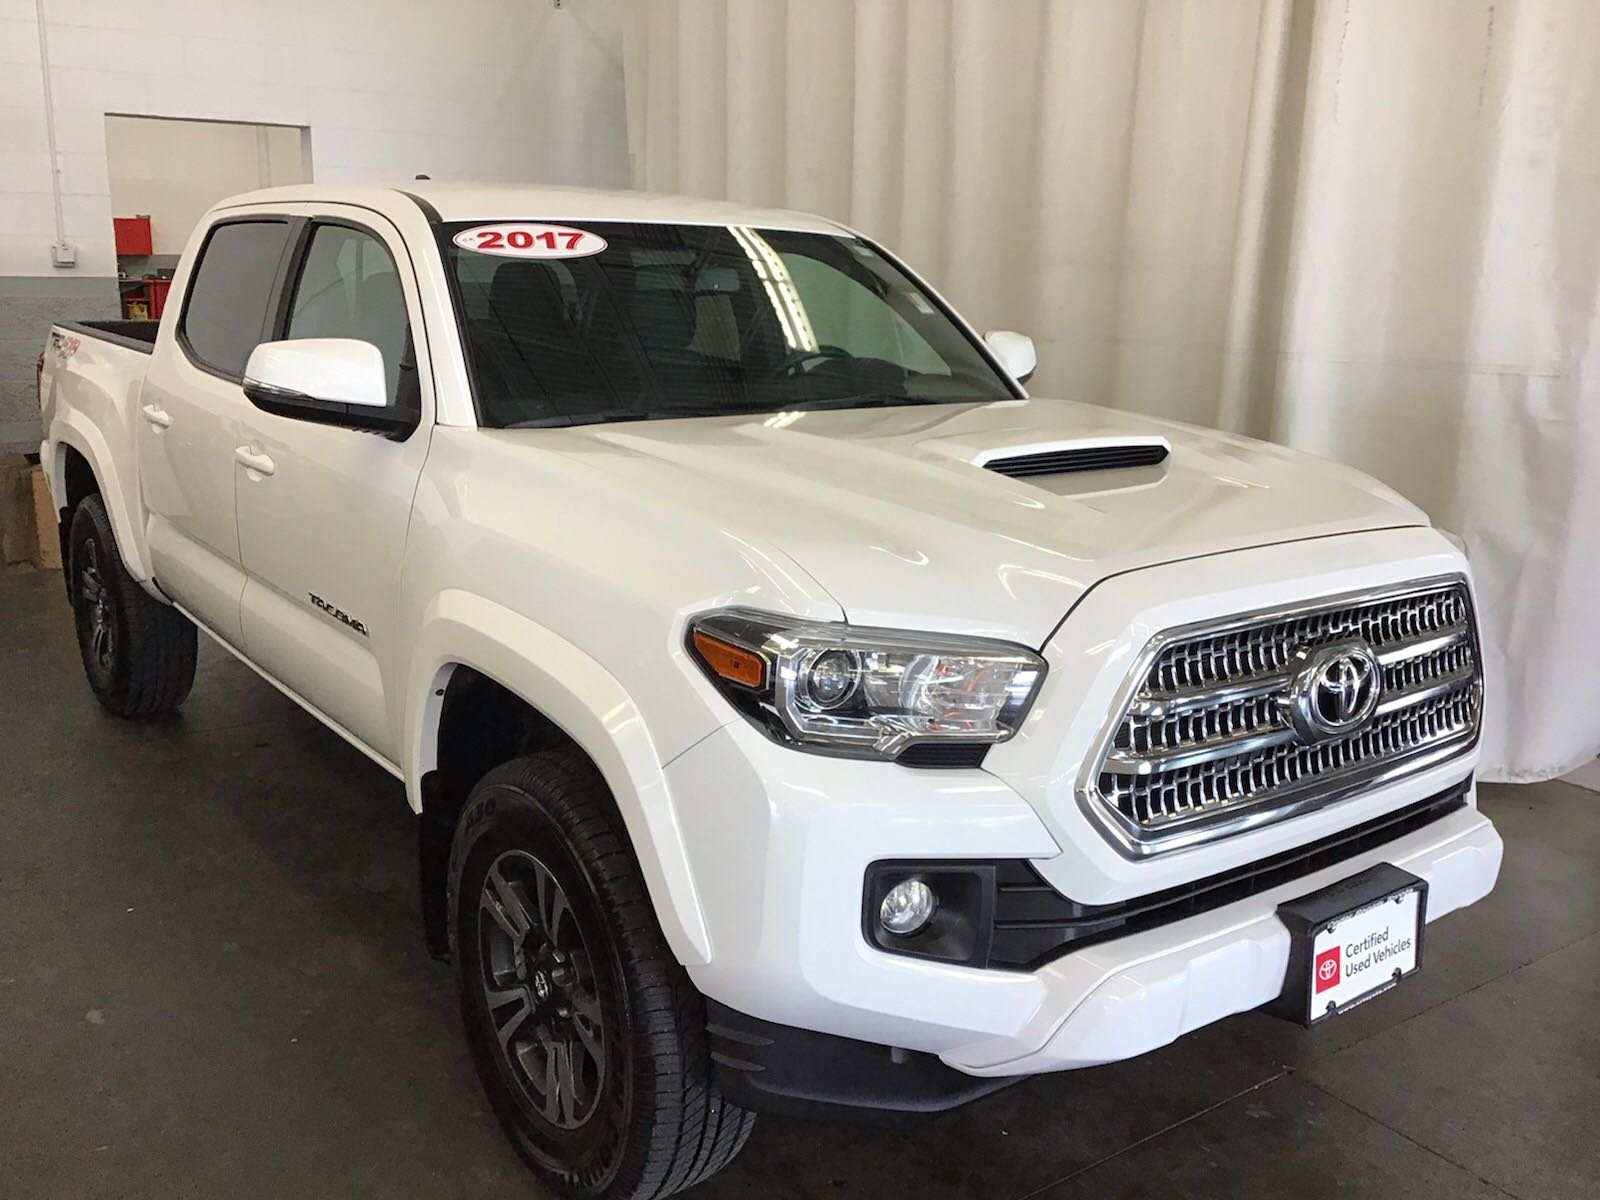 Used toyota Tacoma Awesome Pre Owned and Certified Used toyota Dealer In Hiawatha Ia